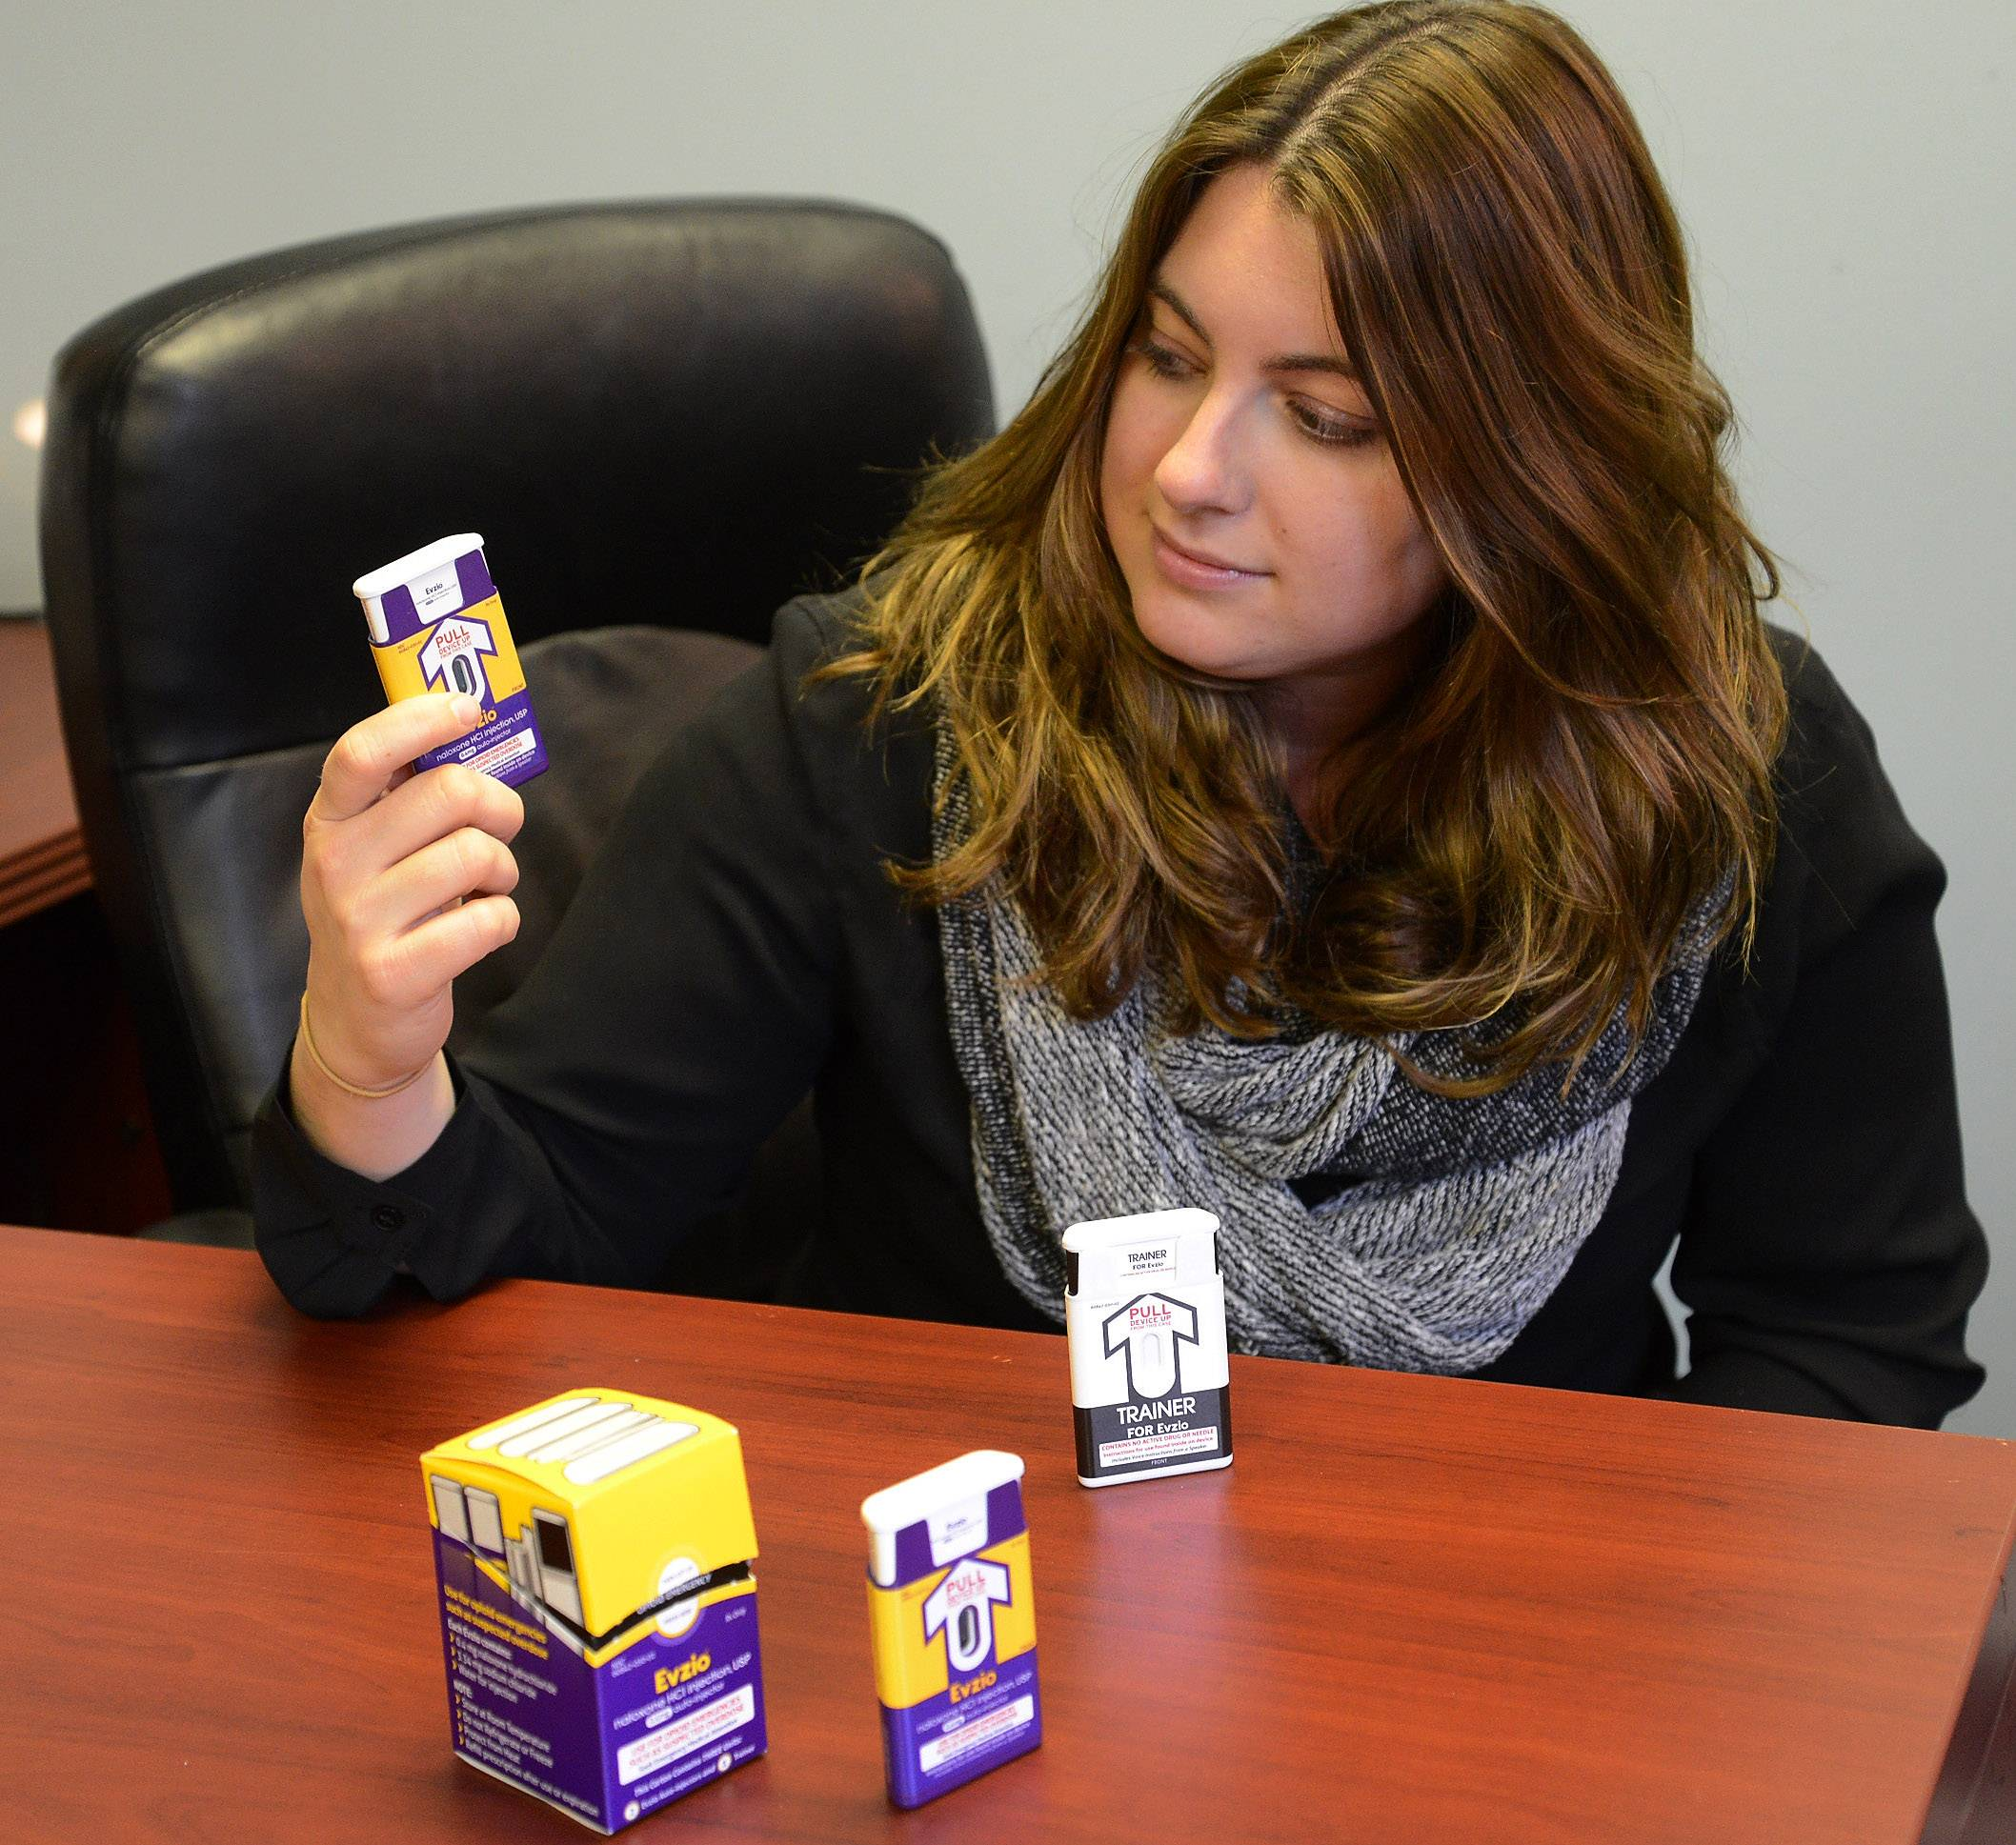 Live 4 Lali, an Arlington Heights-based nonprofit, has donated doses of the heroin overdose antidote naloxone for use by first-responders in Kane County.